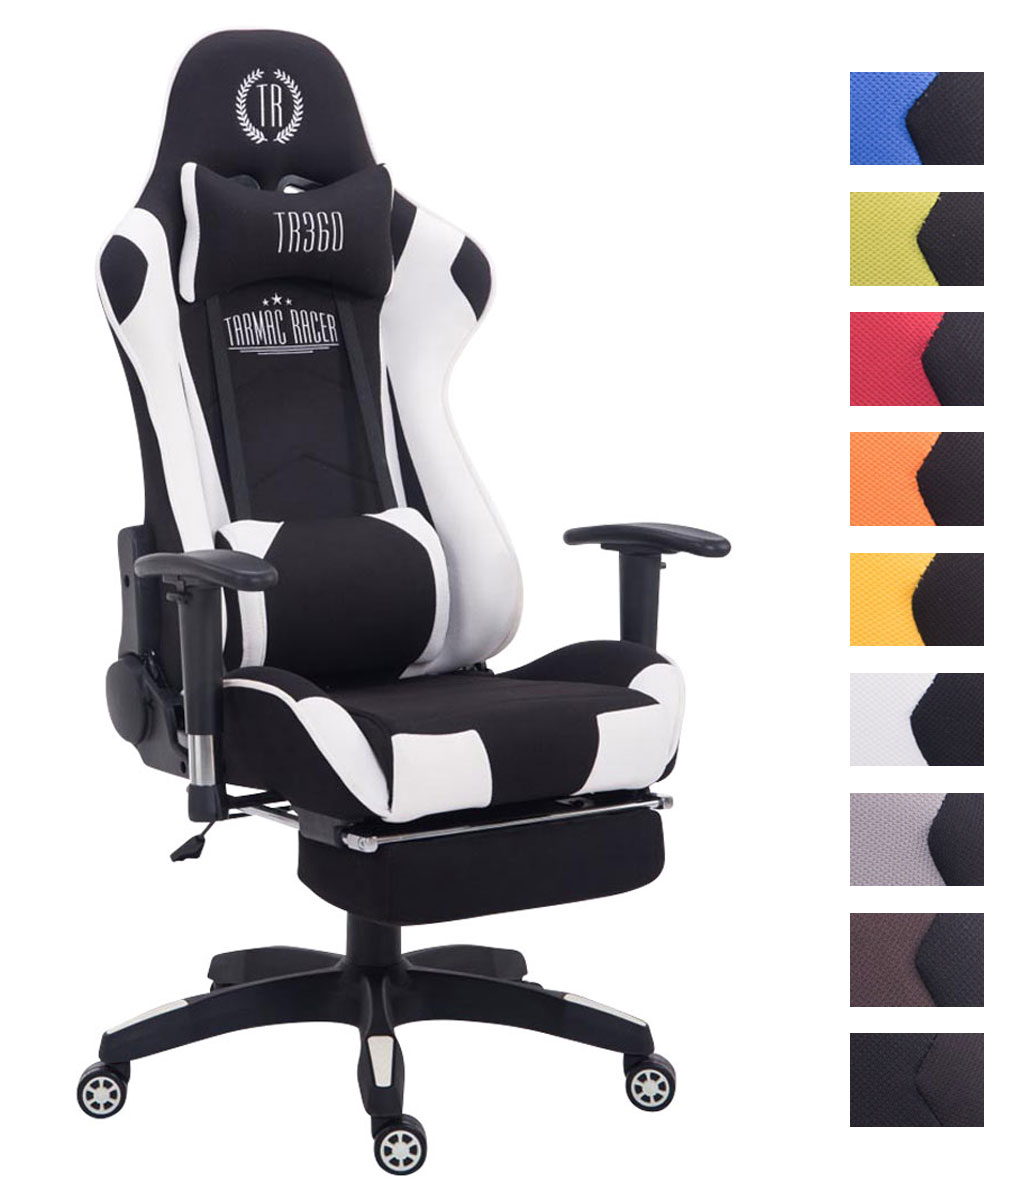 Xl Racing Bürostuhl Turbo Stoff Gaming Drehstuhl 150 Kg Belastbar